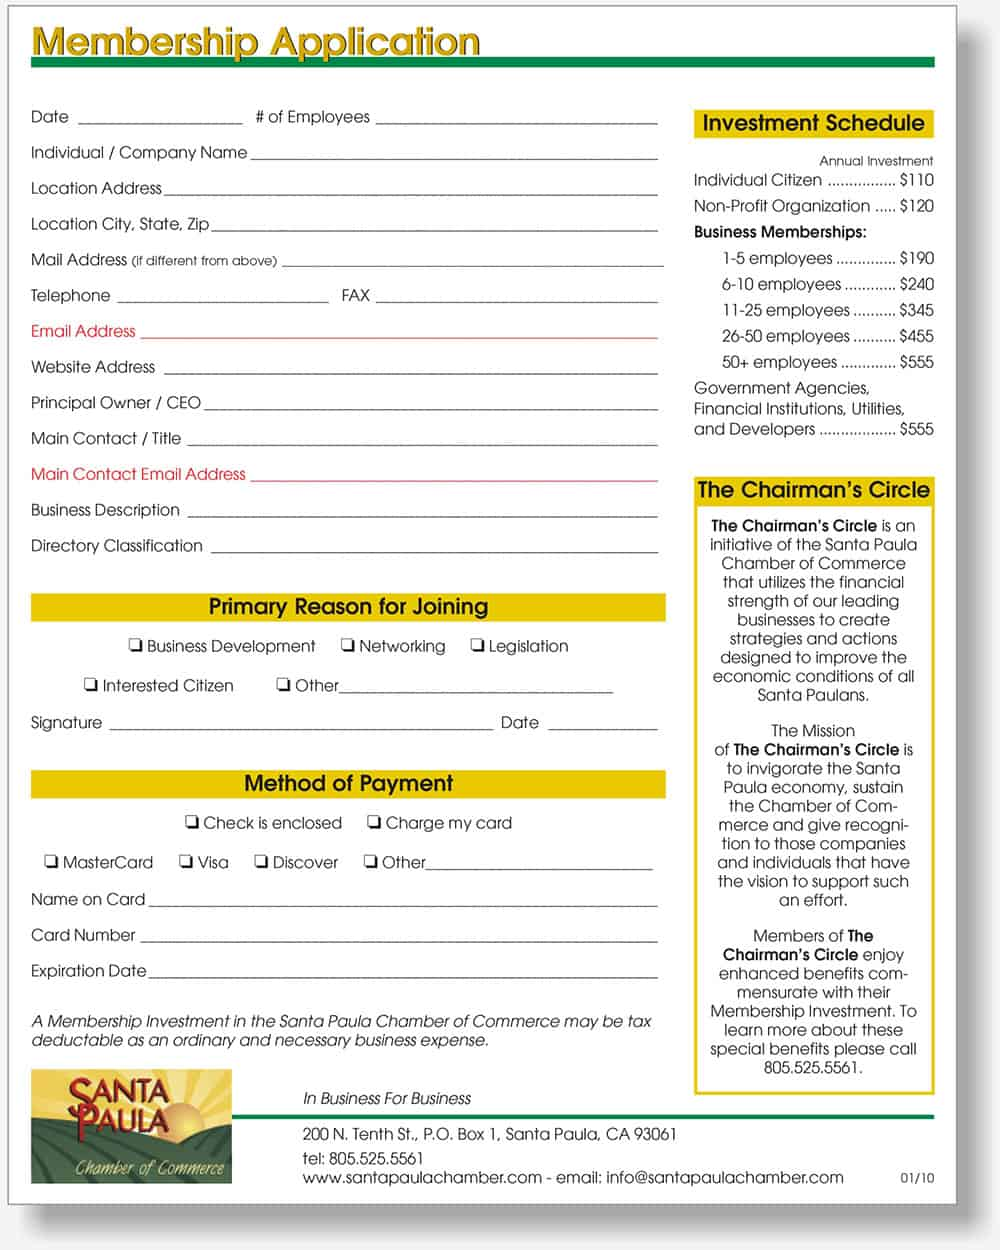 Santa Paula Chamber application form